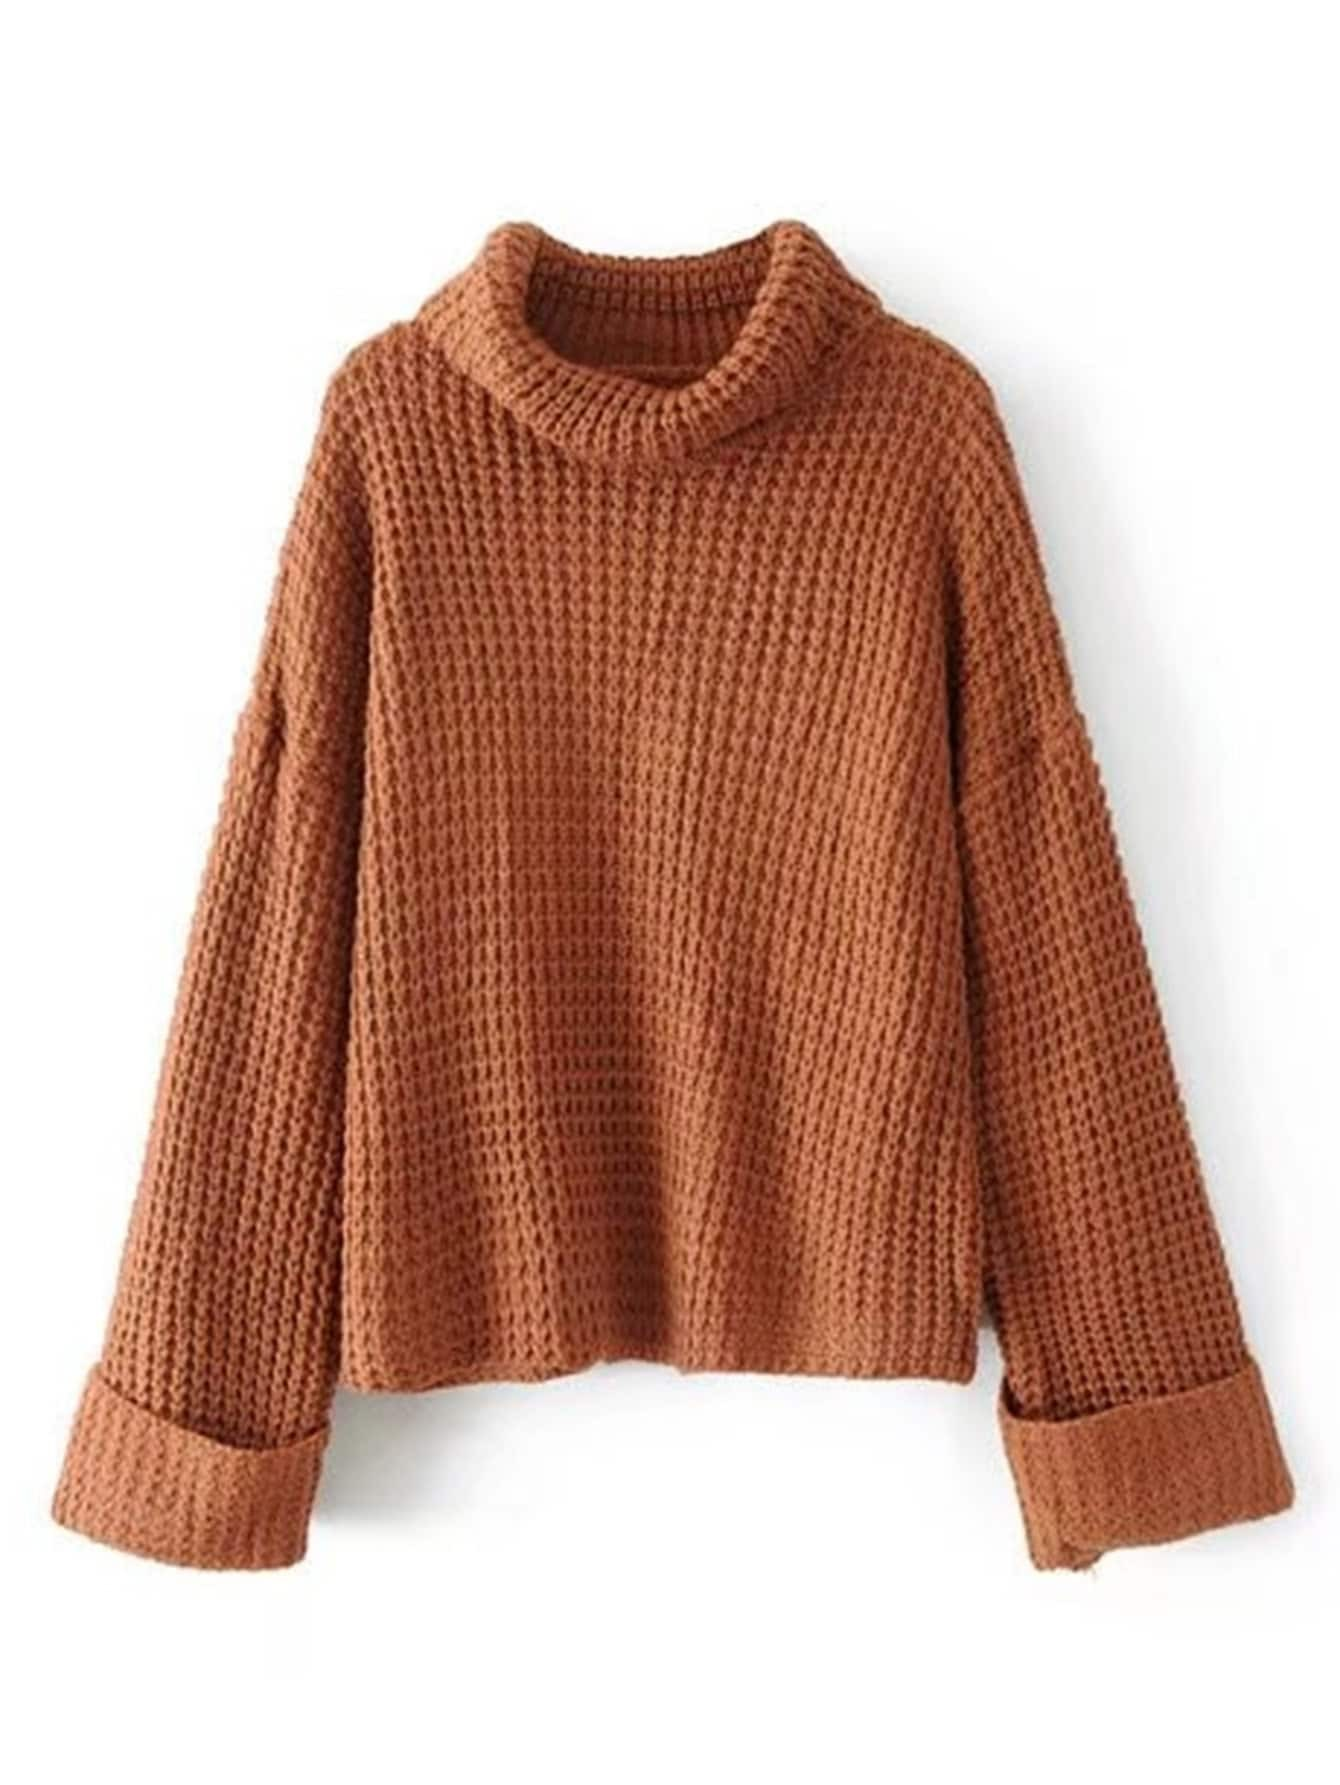 Sweaters & Knits I'm Loving from Shein — Hey Jode